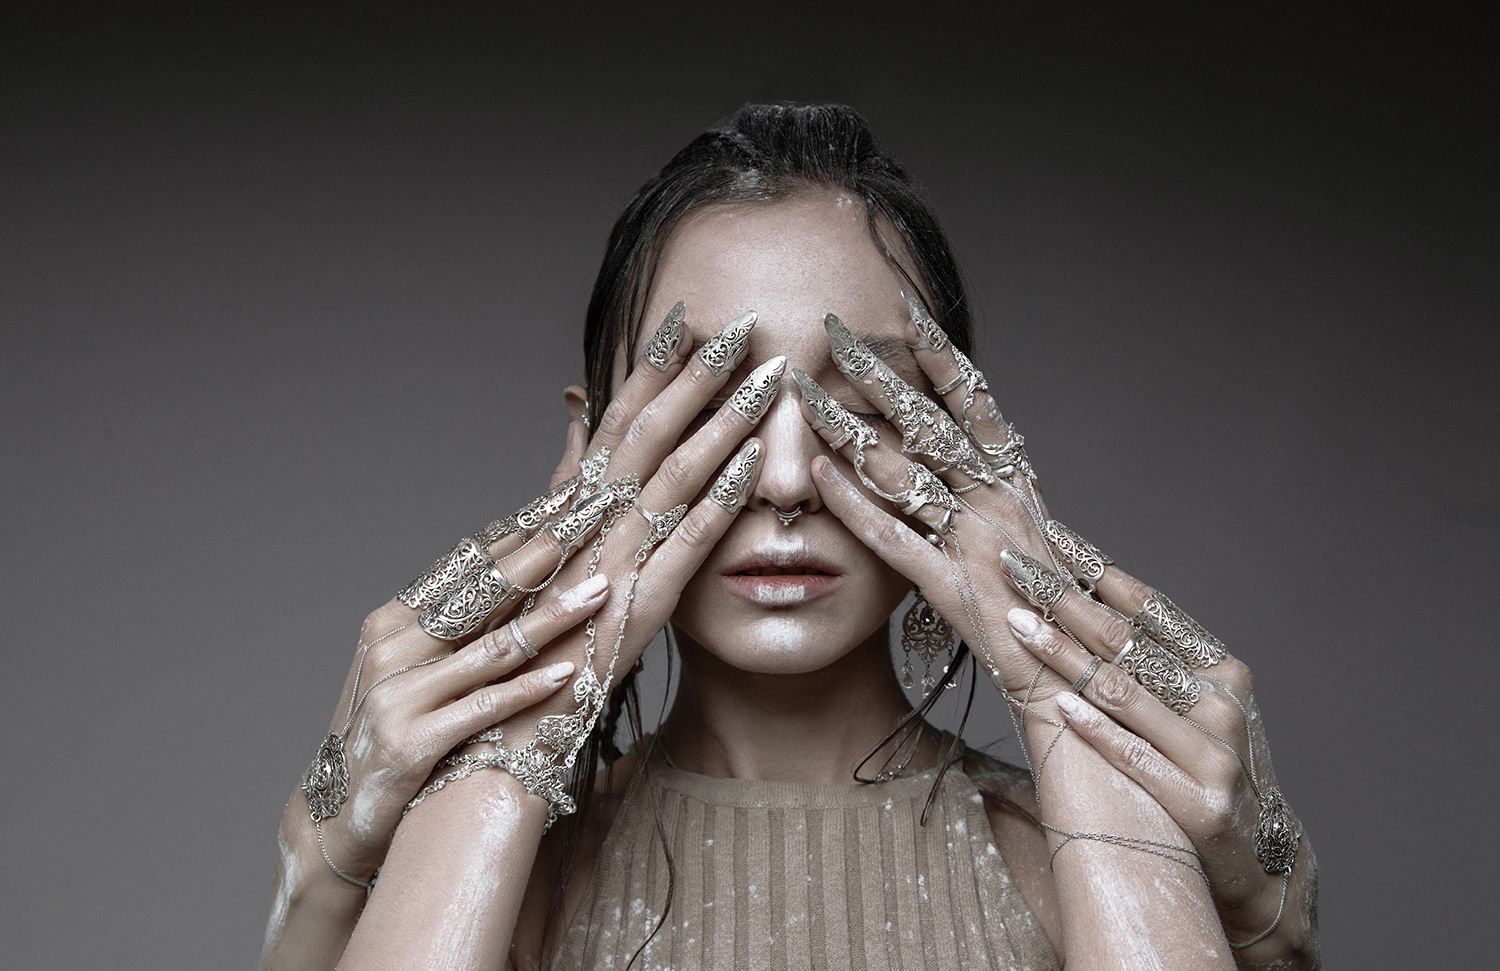 Ilona D. Veresk - Still There - face covered hands